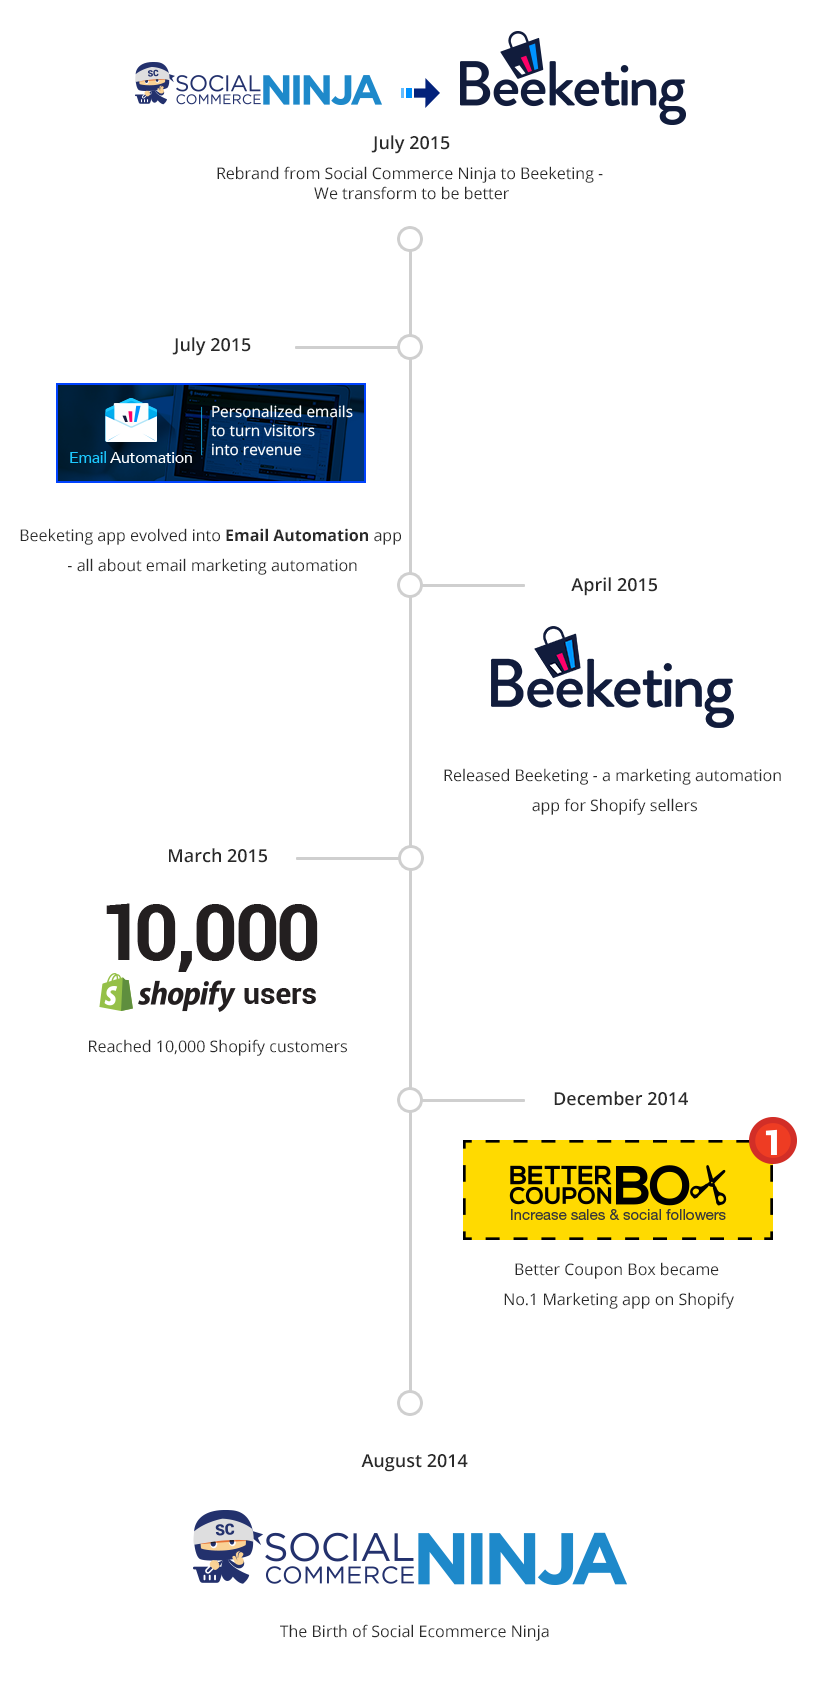 Social Commerce Ninja Is Officially Rebranded To Beeketing